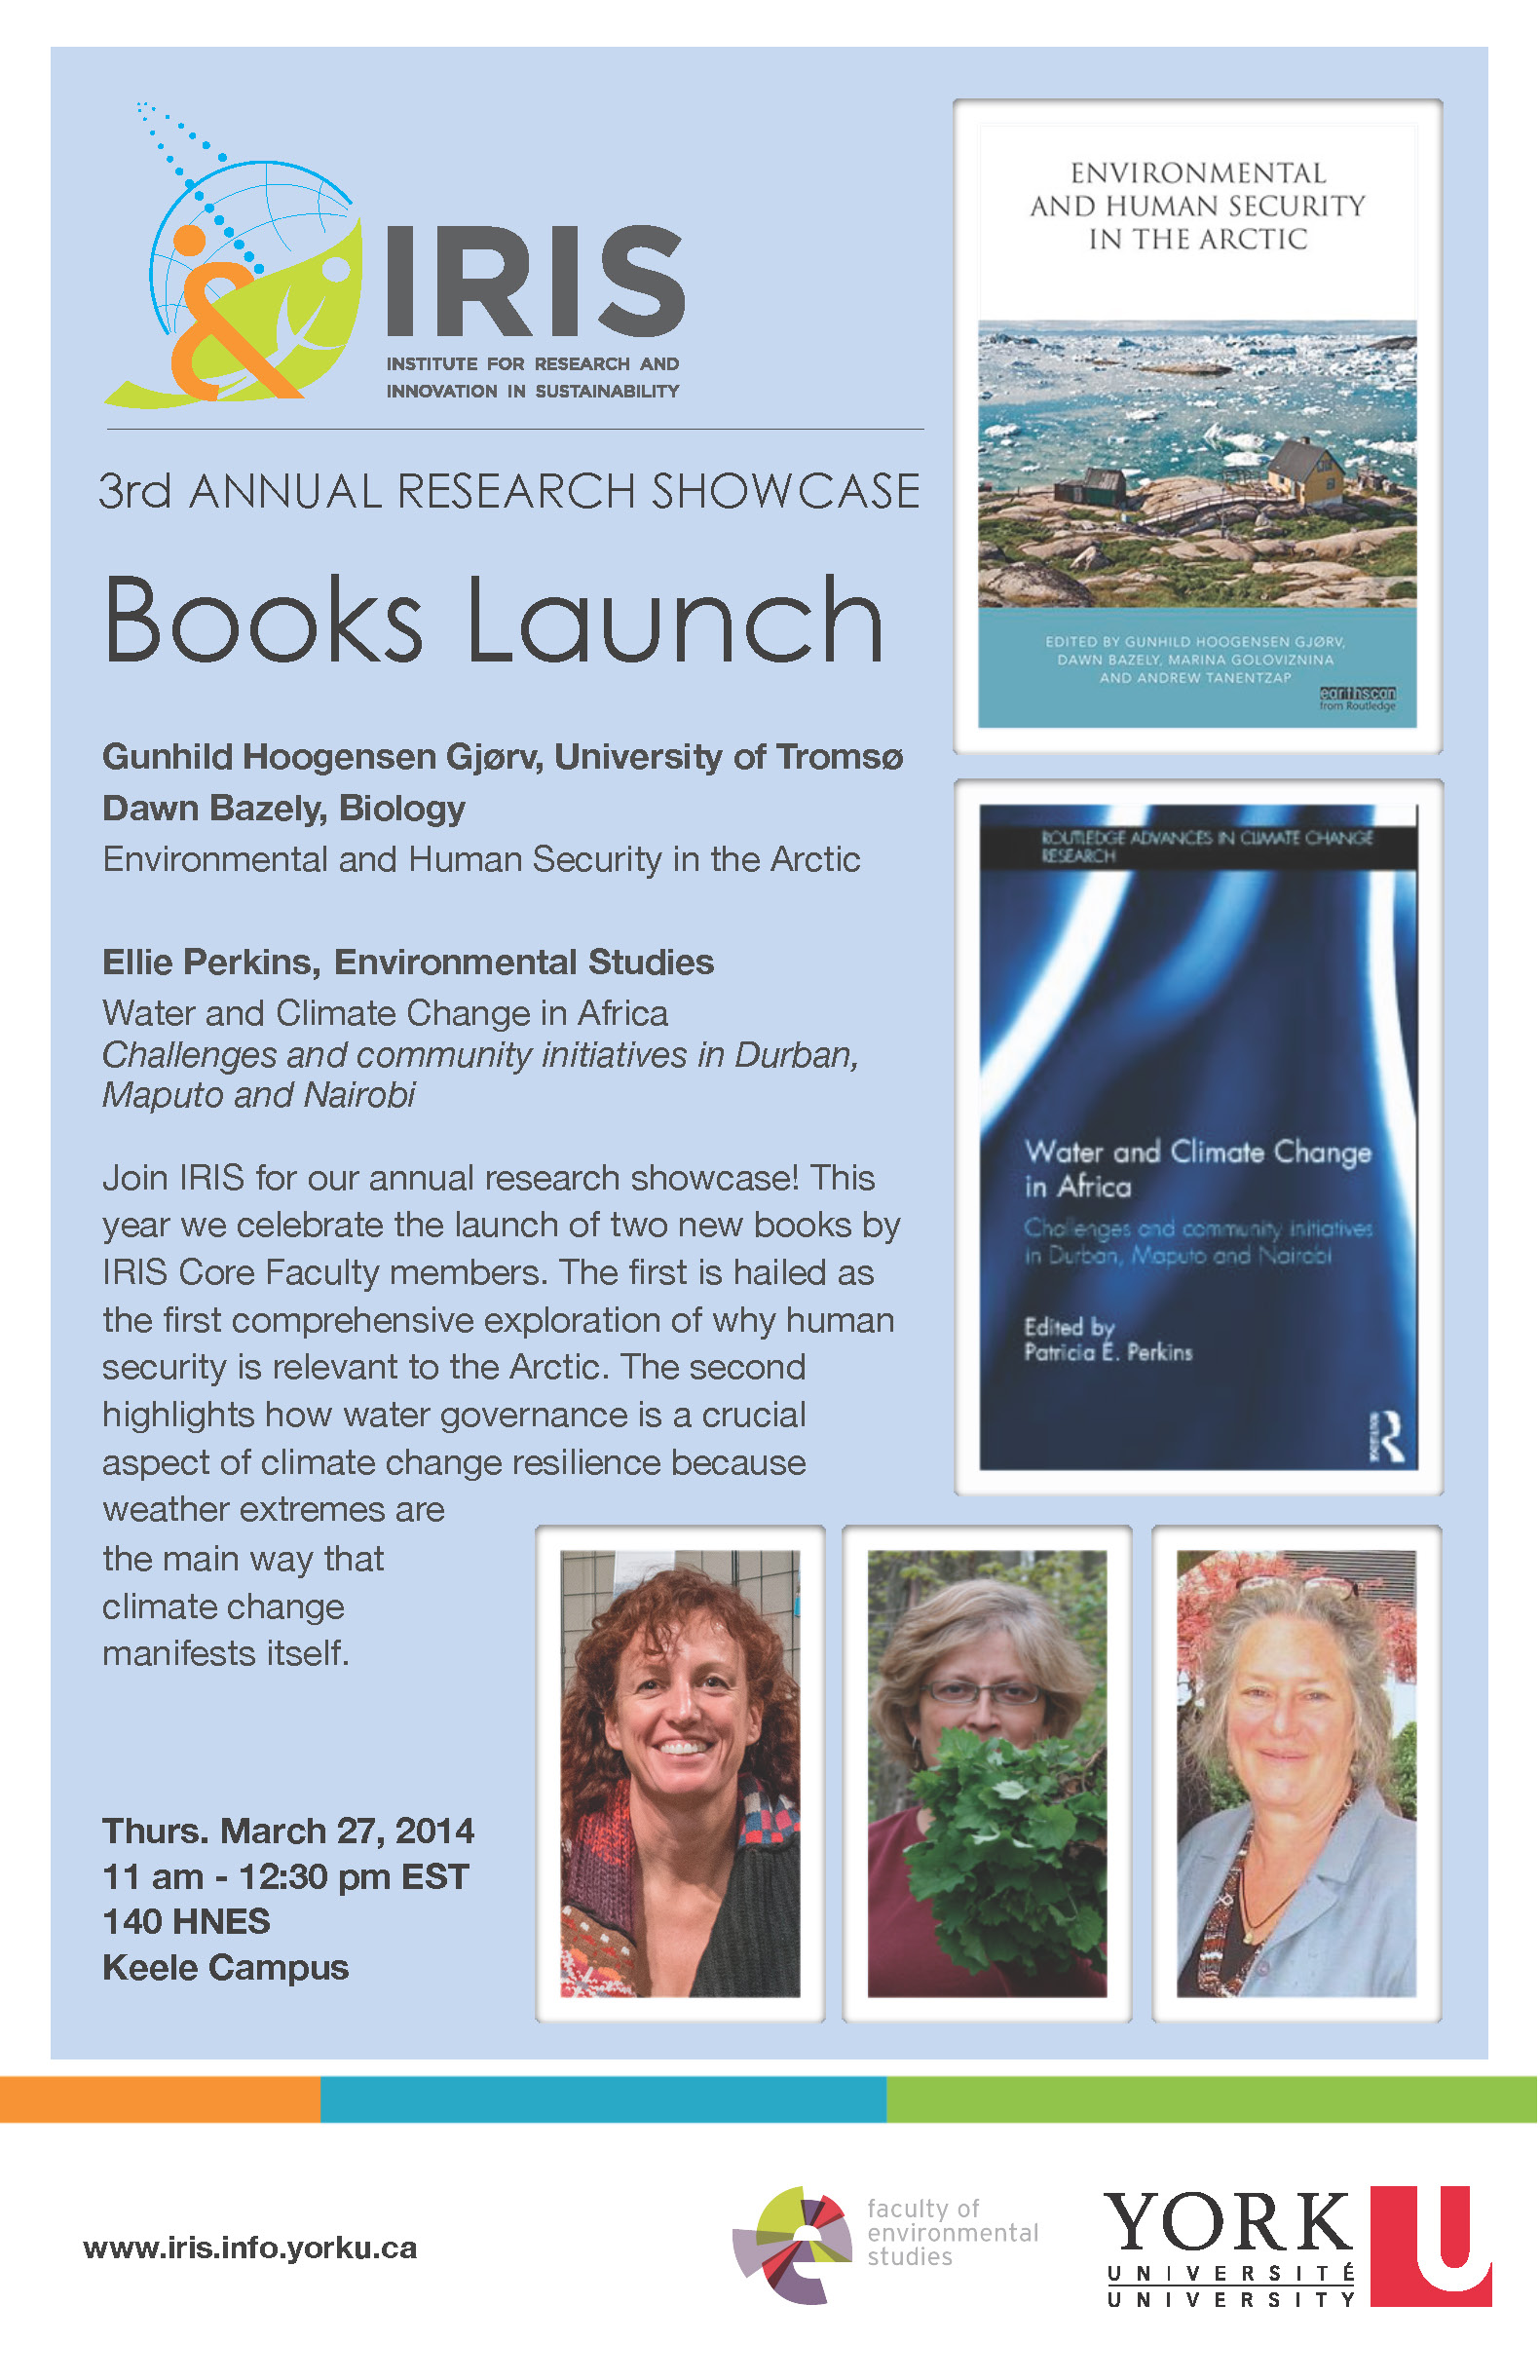 IRIS Showcase - 2014 - Book Launches